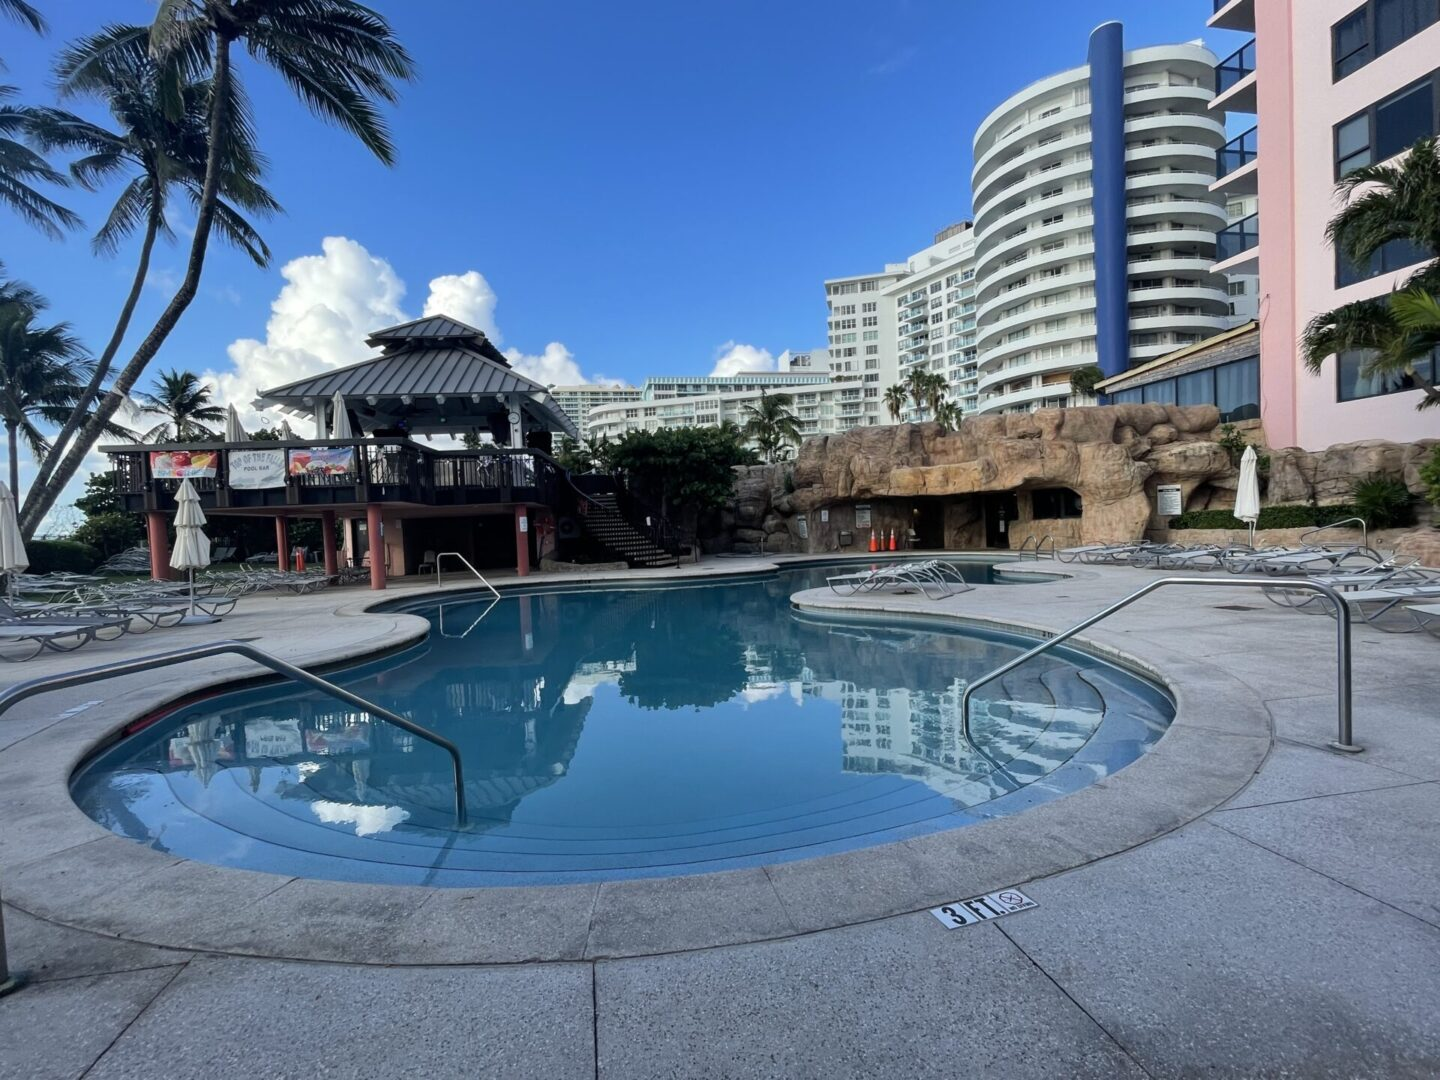 A curvy pool surrounded by several buildings